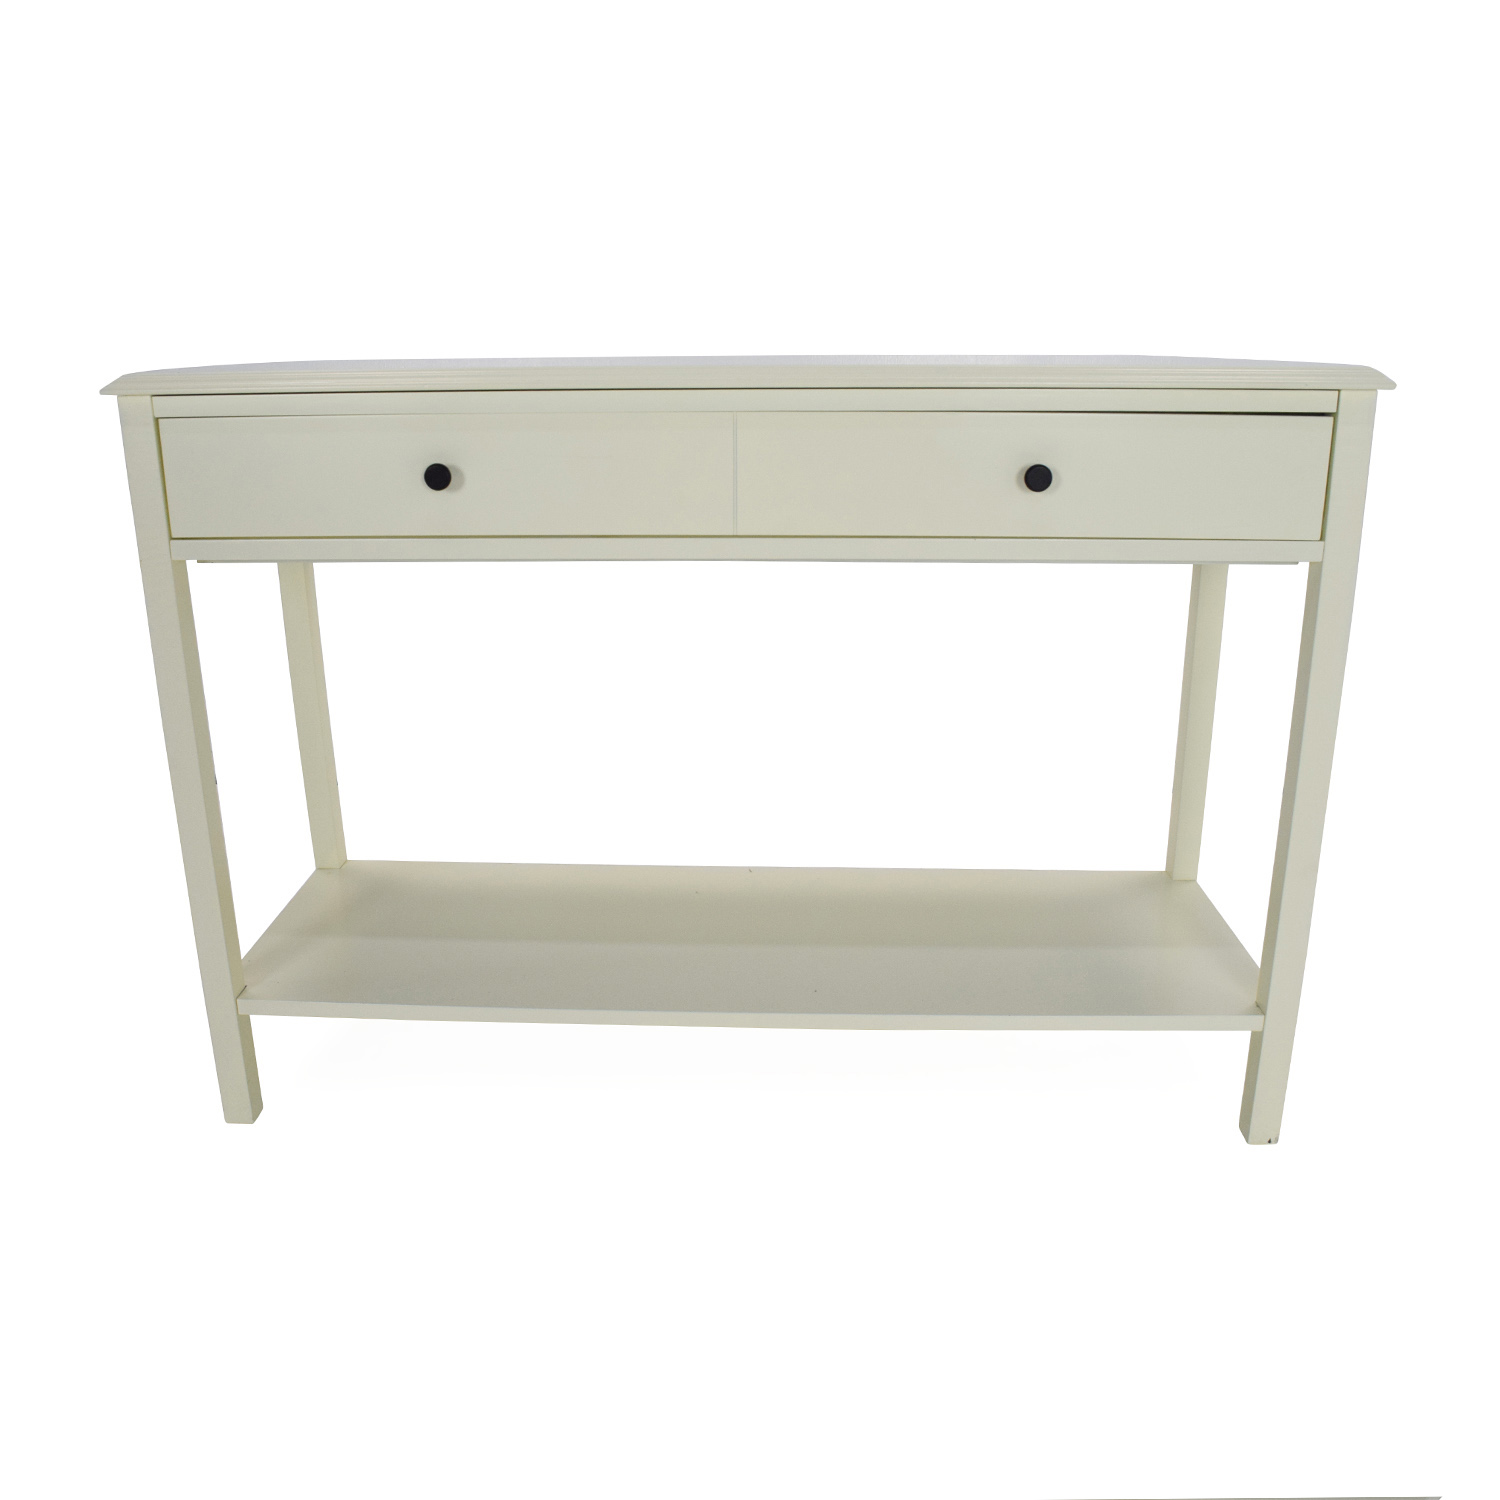 Threshold Threshold Windham Console Table dimensions